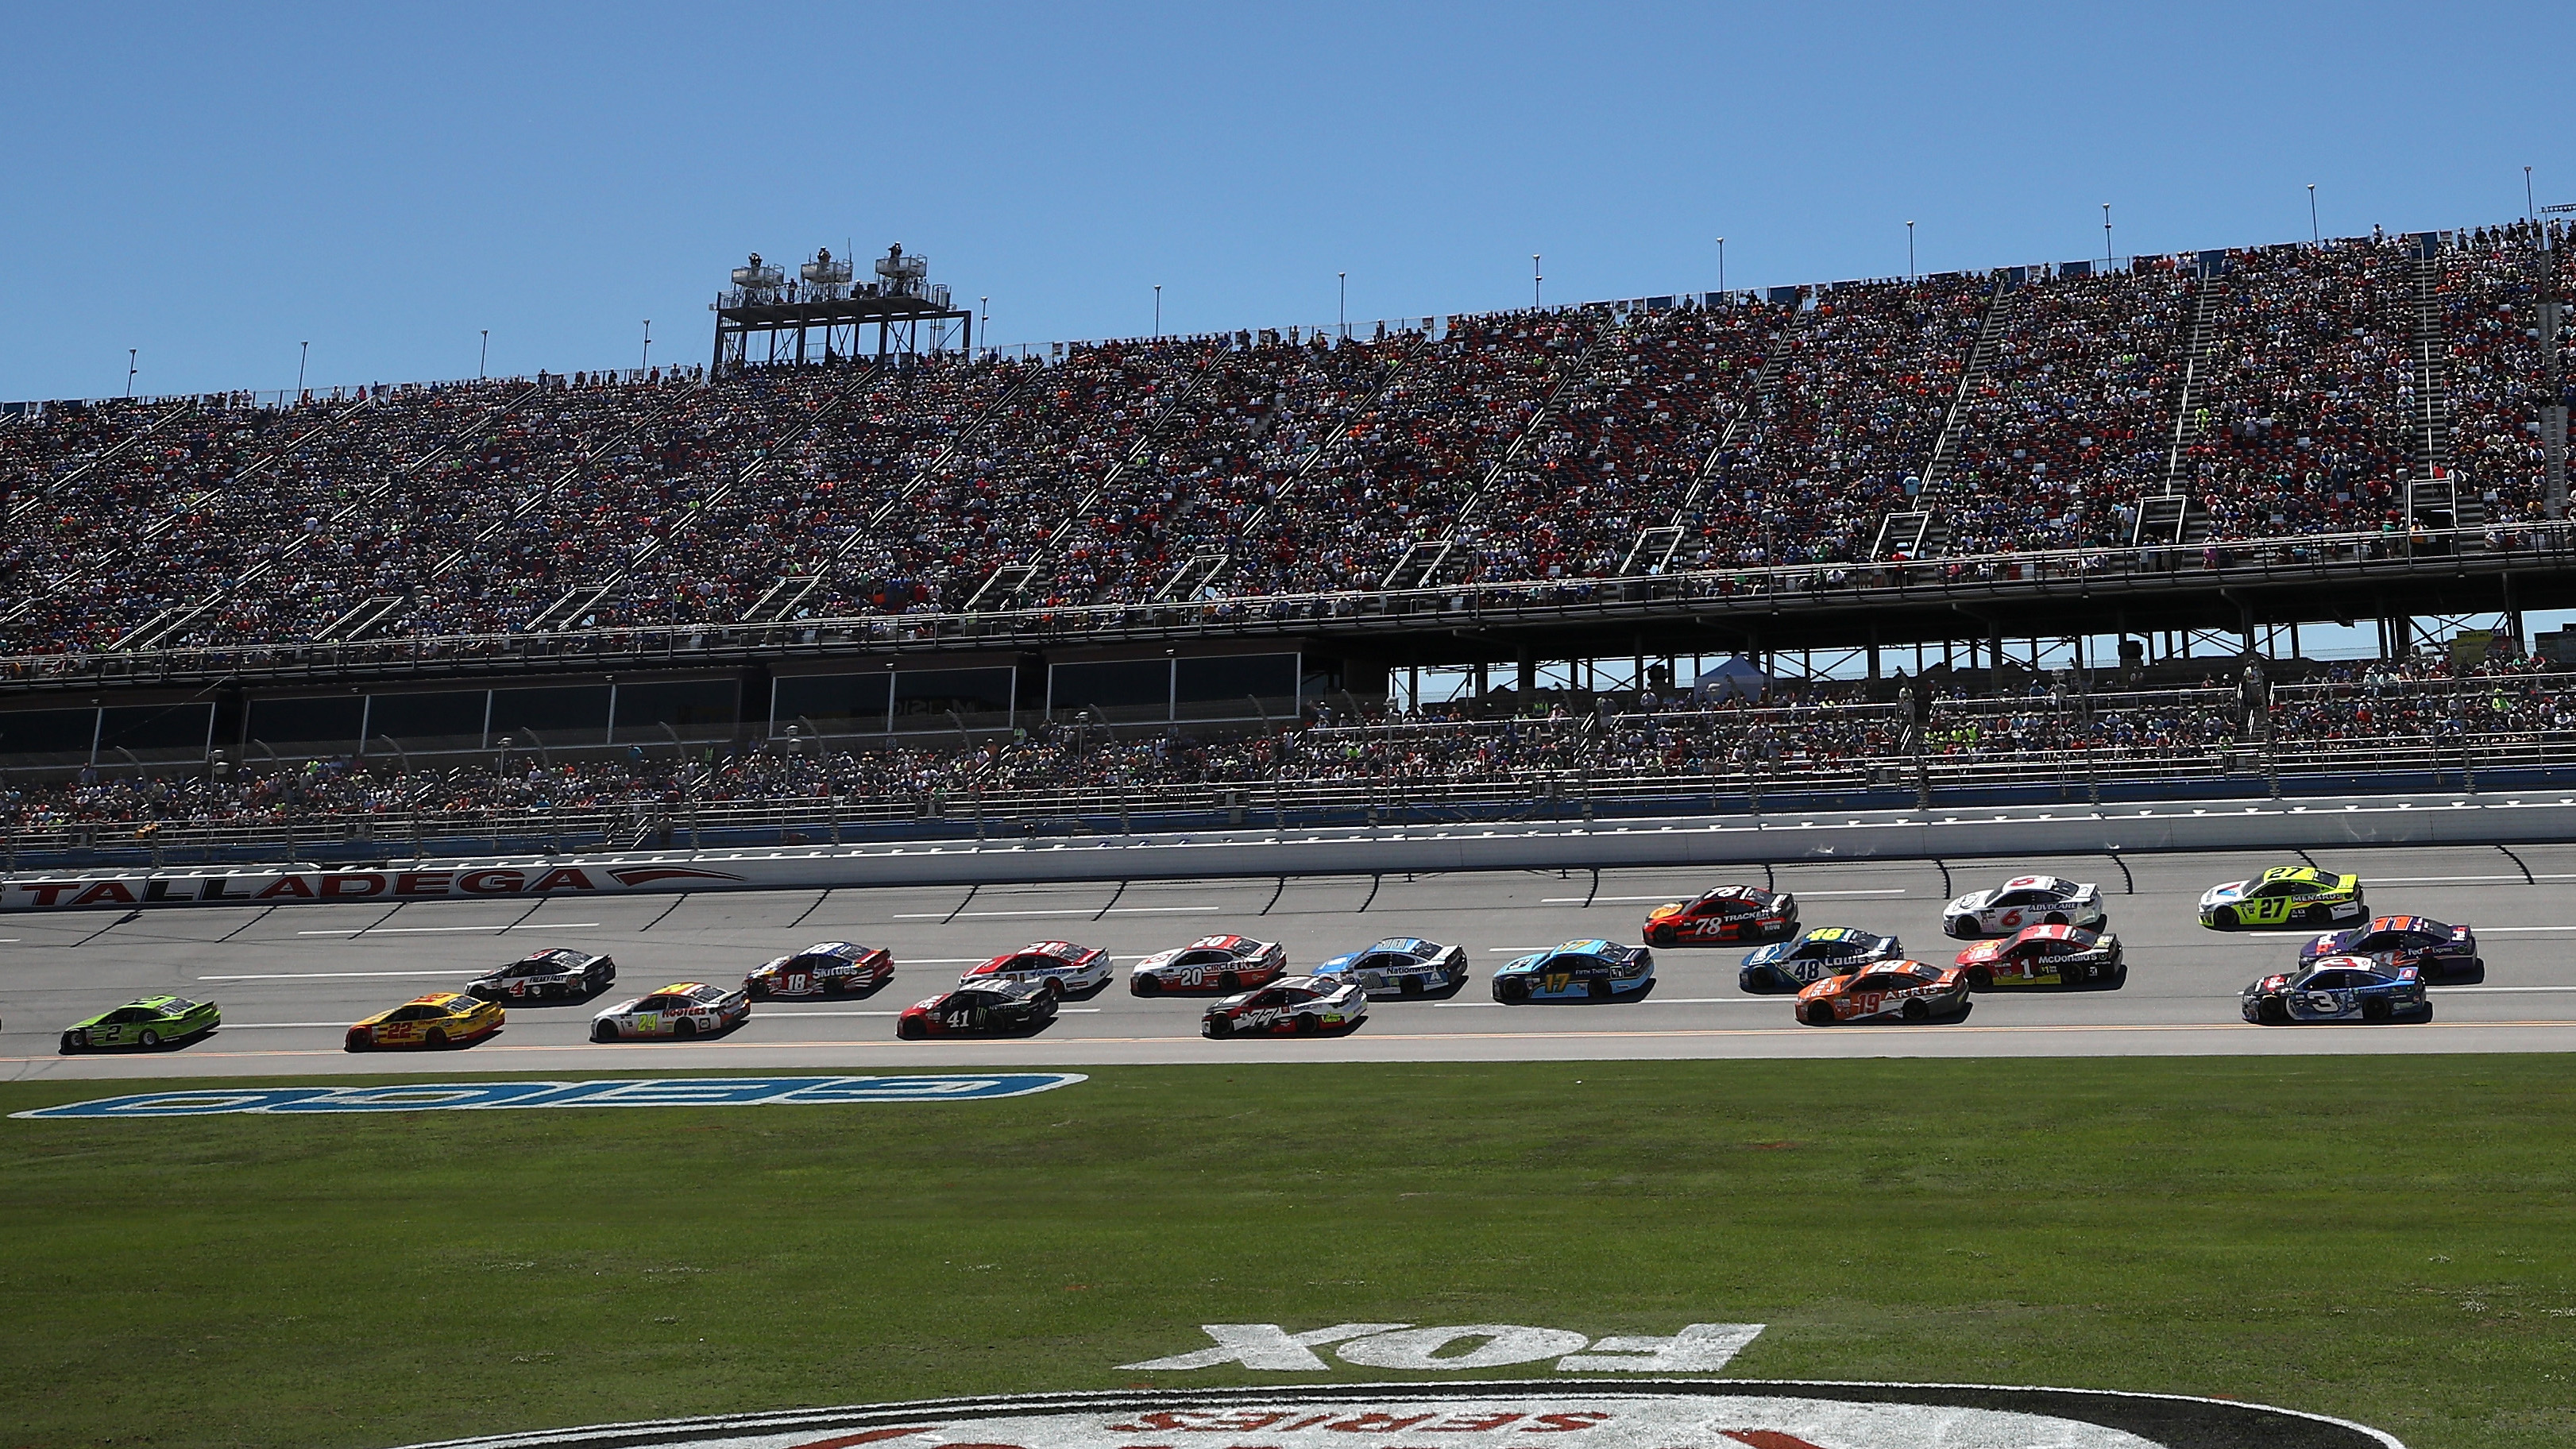 TALLADEGA, AL - MAY 07: Cars race during the Monster Energy NASCAR Cup Series GEICO 500 at Talladega Superspeedway on May 7, 2017 in Talladega, Alabama. (Photo by Chris Graythen/Getty Images)